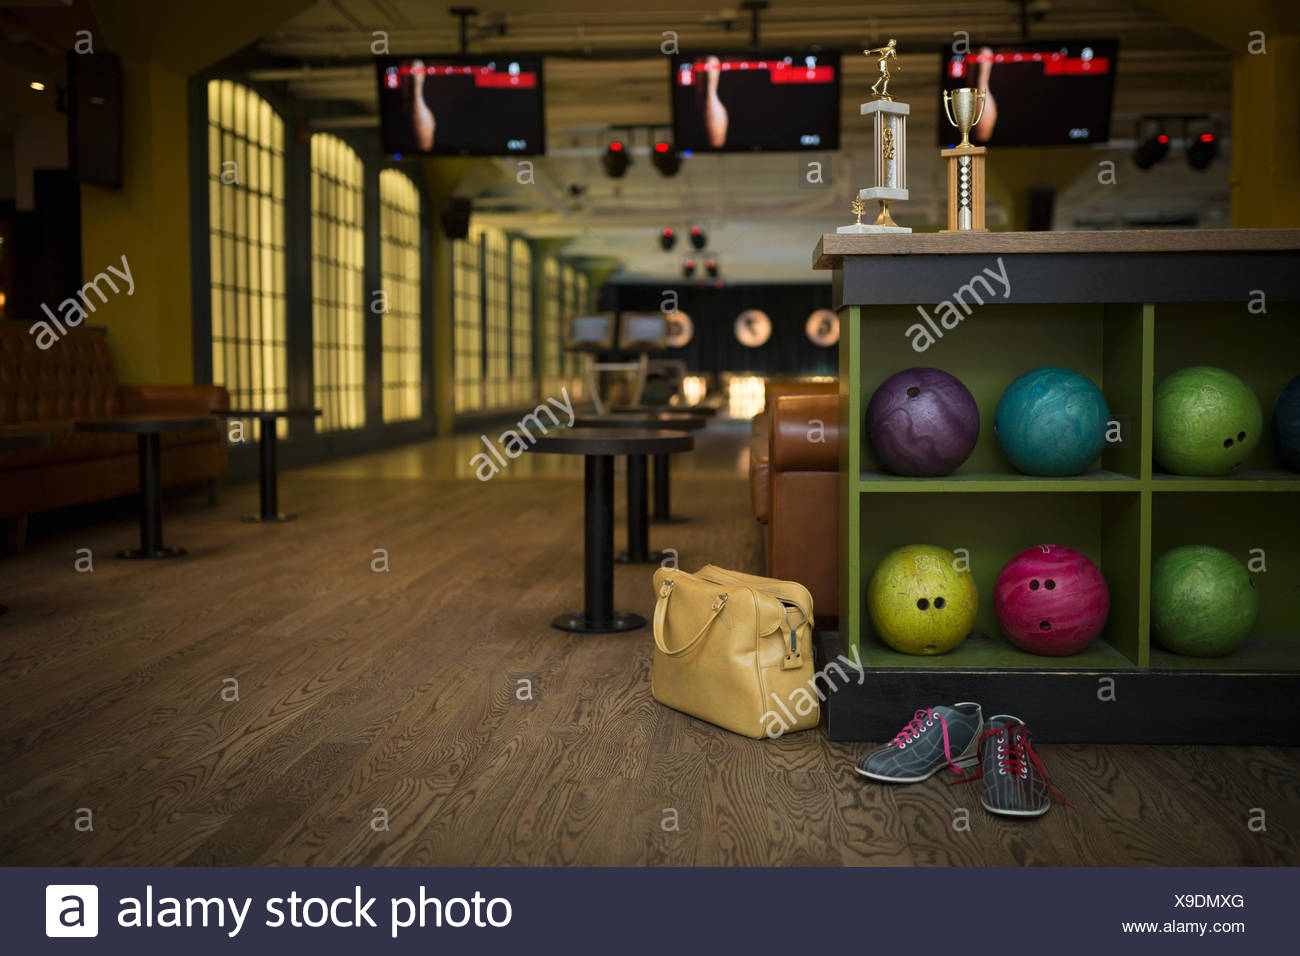 Bowling Alley Stock Photos & Bowling Alley Stock Images - Alamy